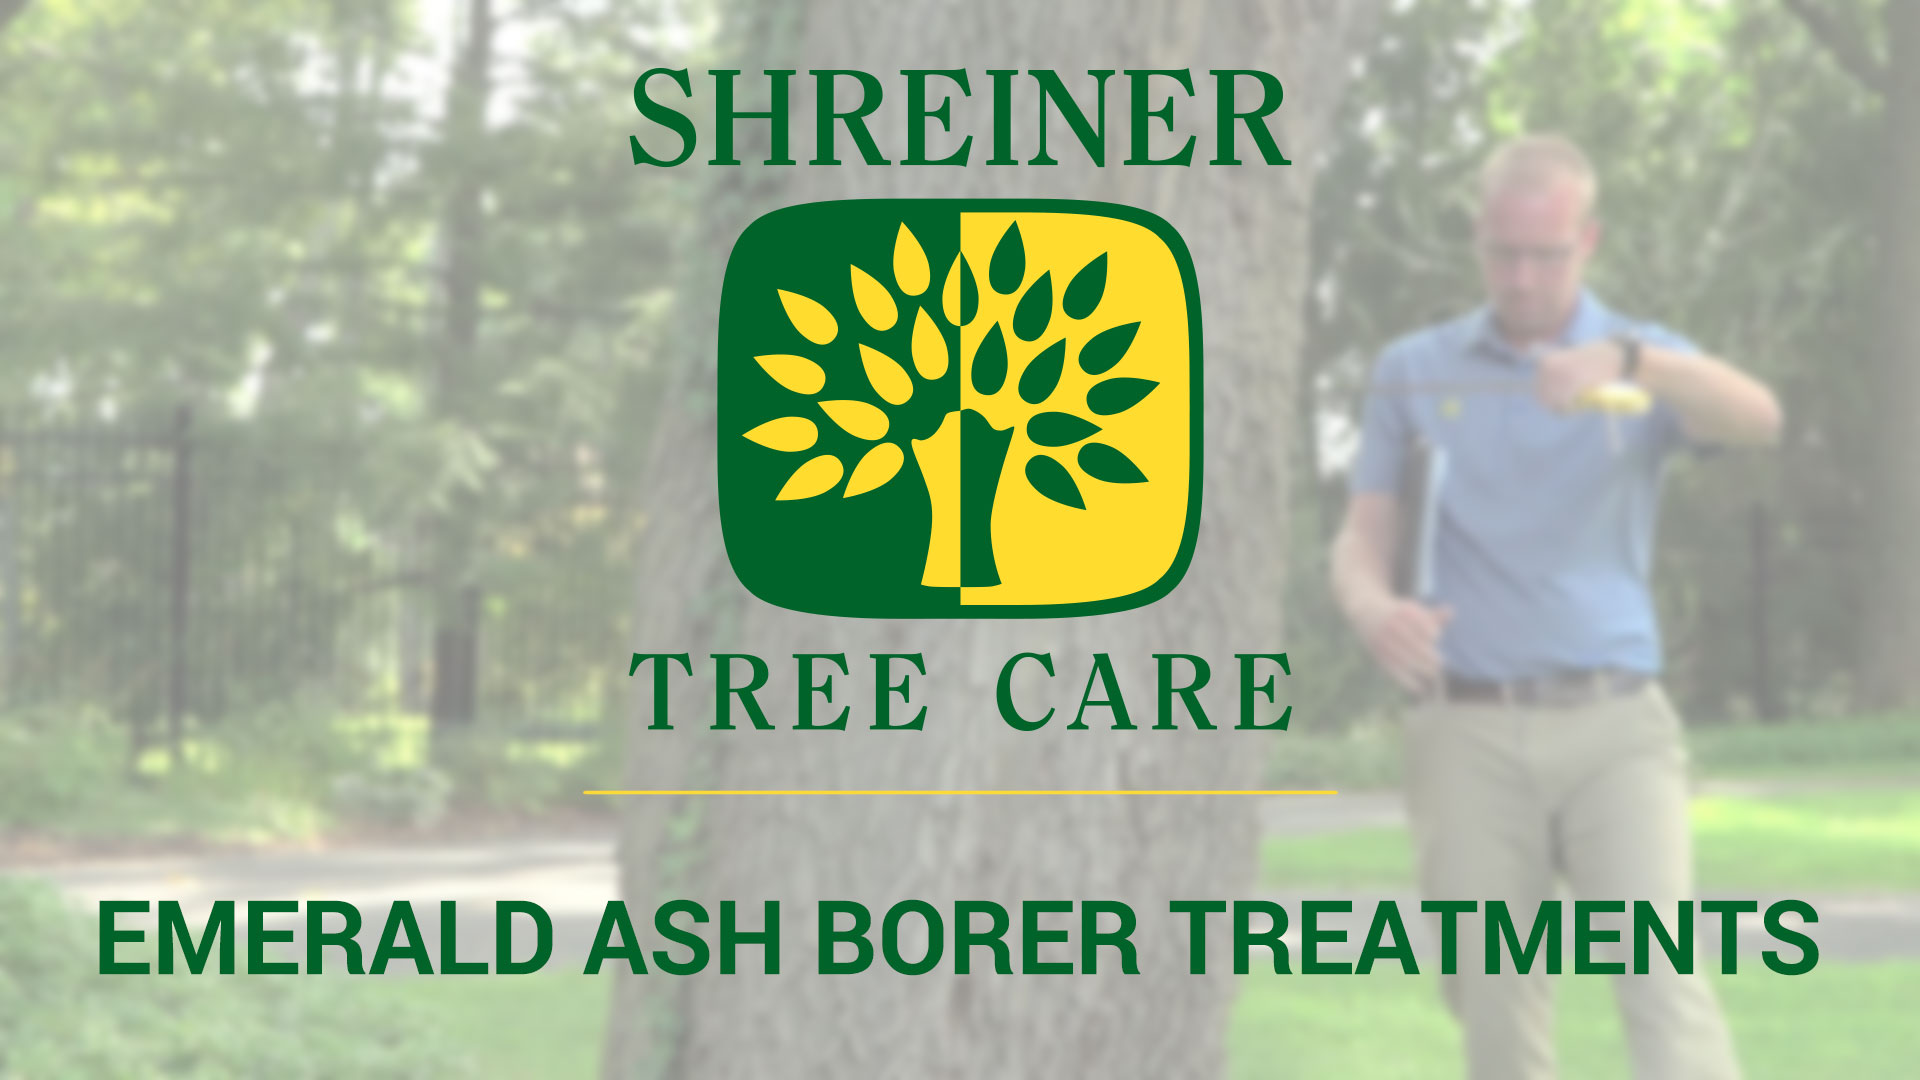 Shreiner Tree Care - Emerald Ash Borer Treatments Video